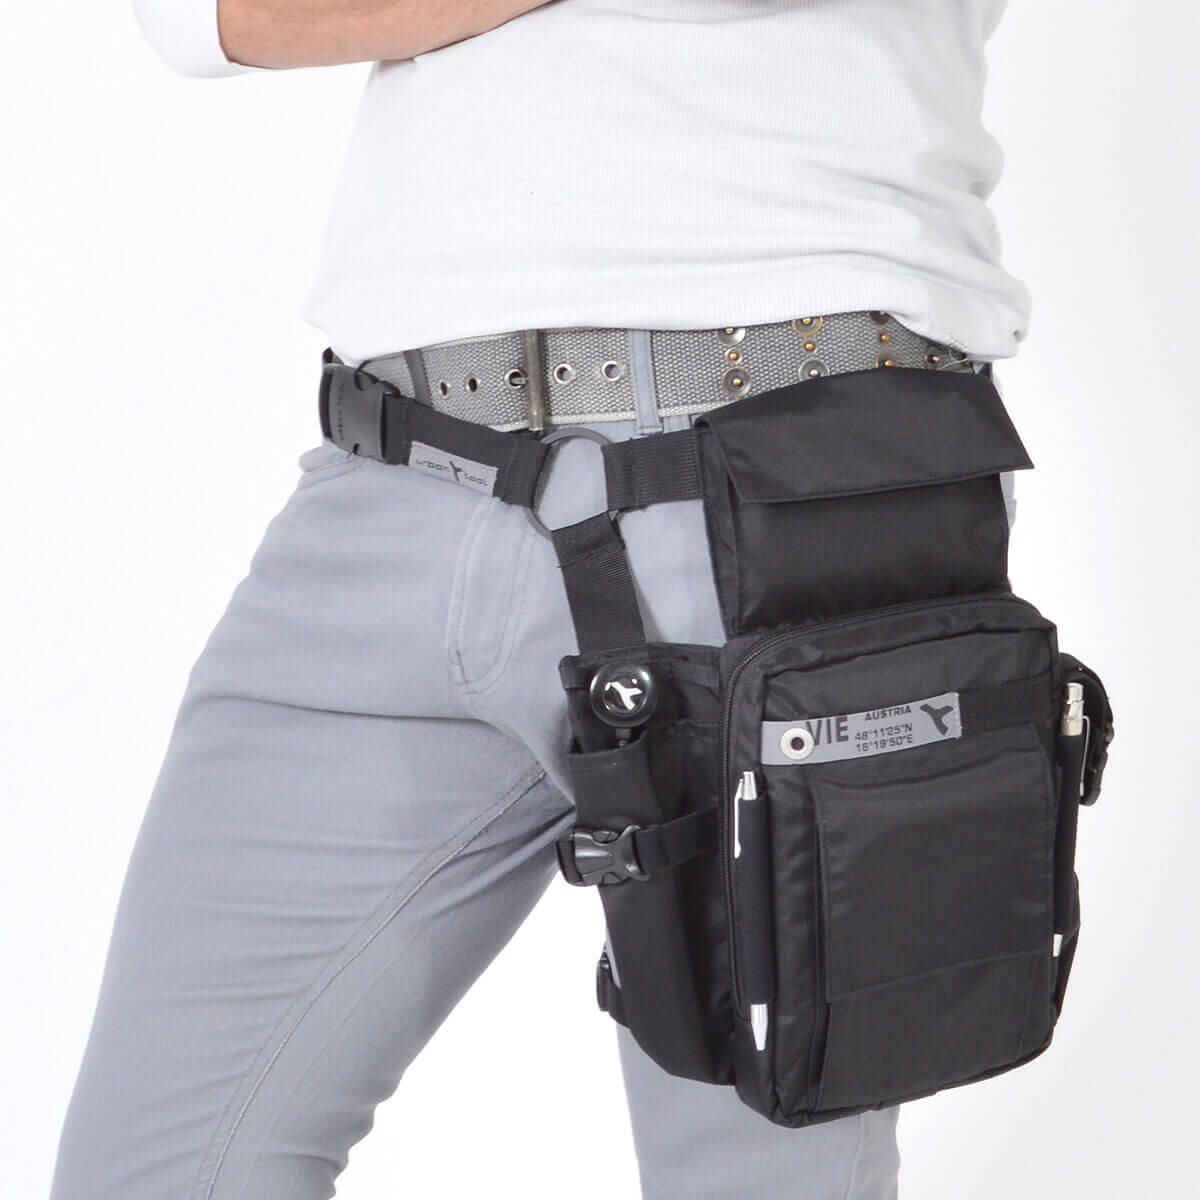 Smartphone and tablet holster waist bag URBAN TOOL ® travel legholster